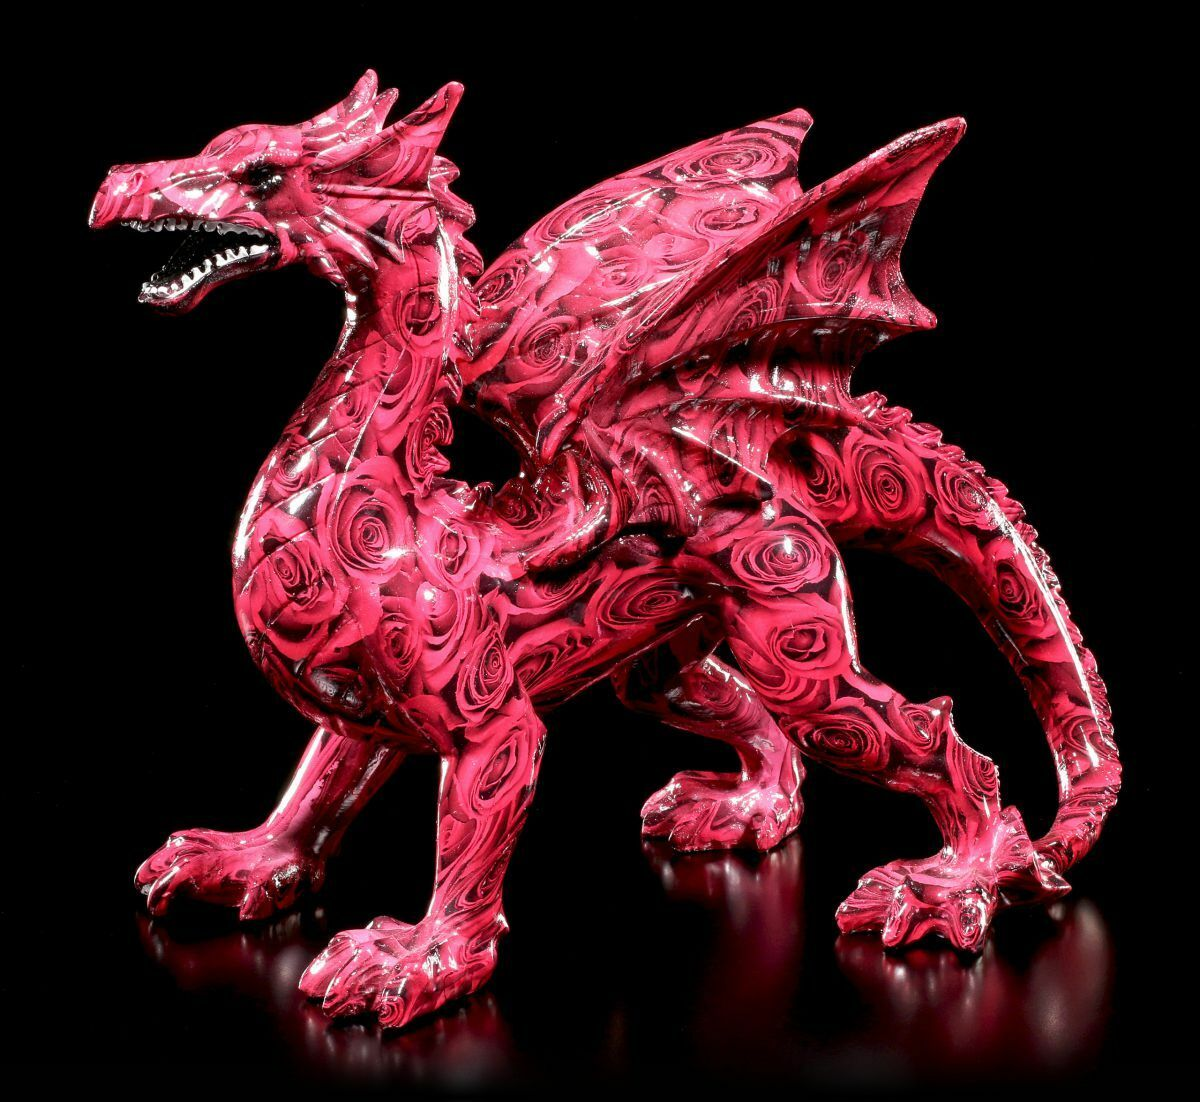 colorful Dragon Figure with pinks - Romance - Fantasy Gothic Statue Patterned